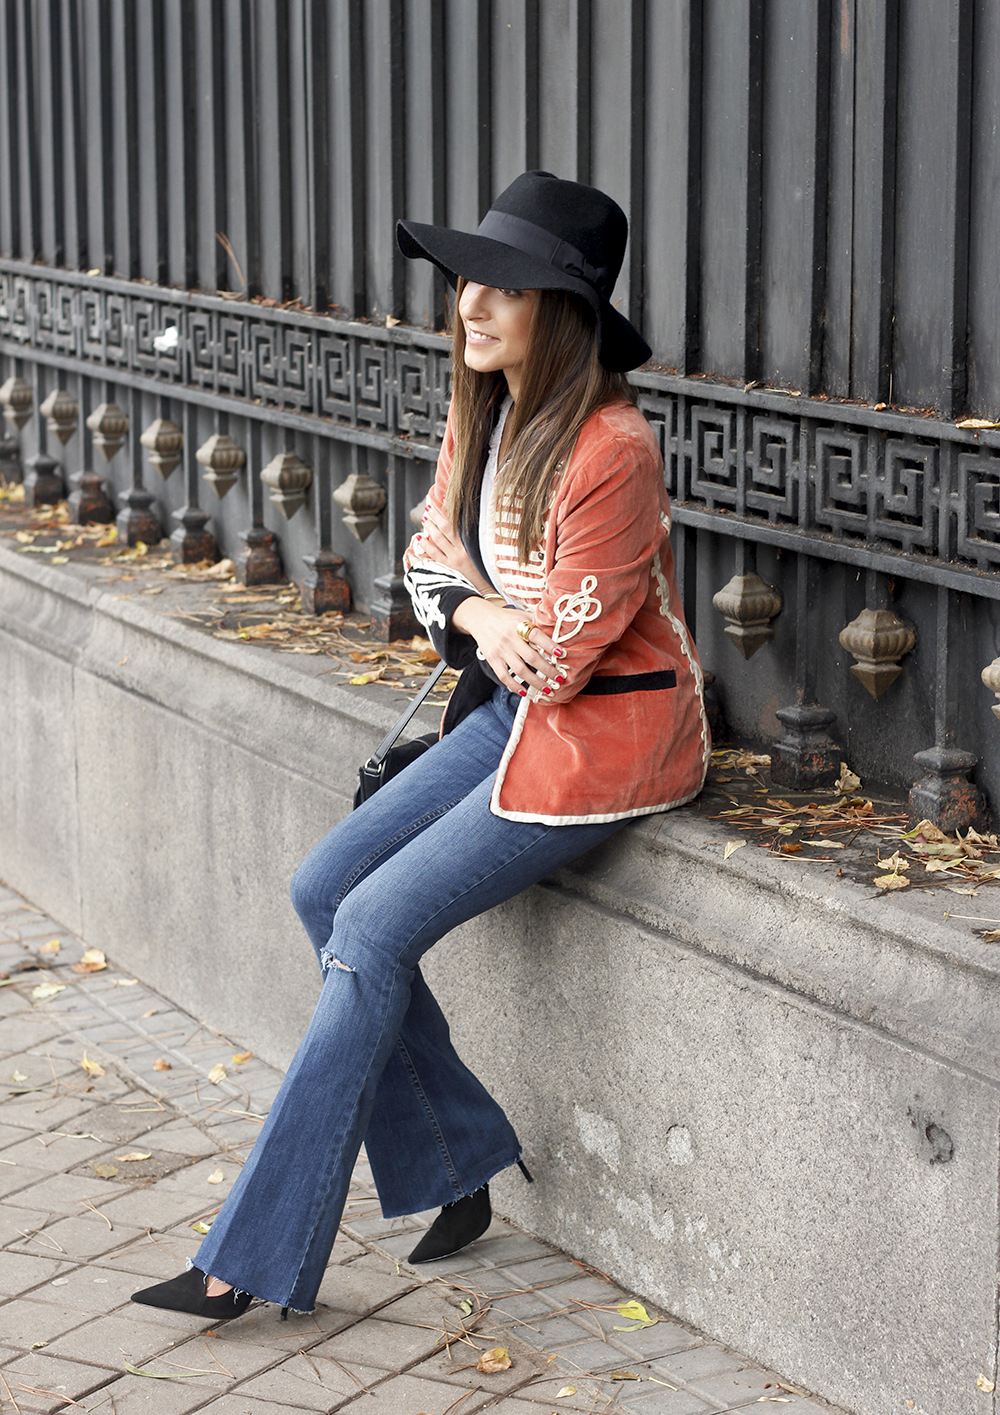 velvet jacket jeans hat rainny day heels accessories outfit style fashion16